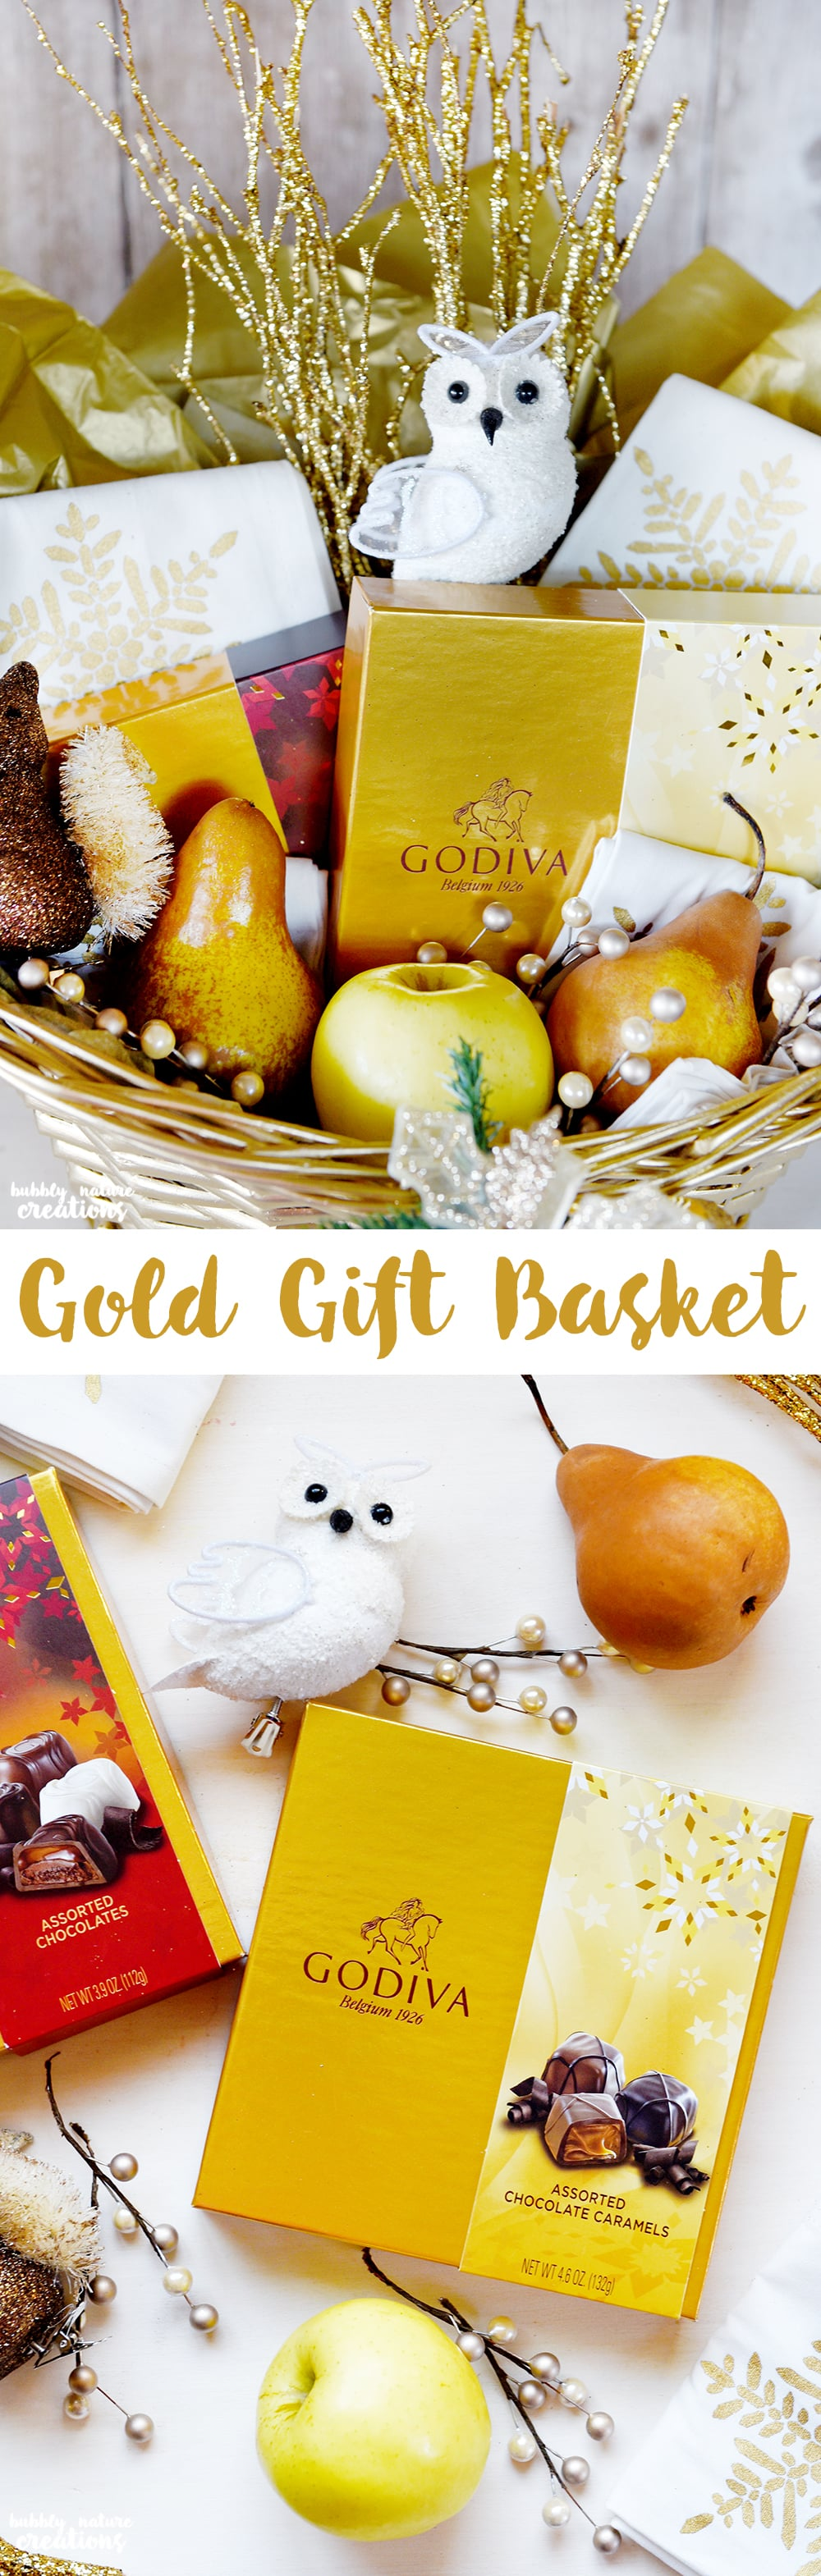 Gold Gift Basket Idea filled with Gold Colored Items! Easy Gift Idea for those that are hard to buy for!